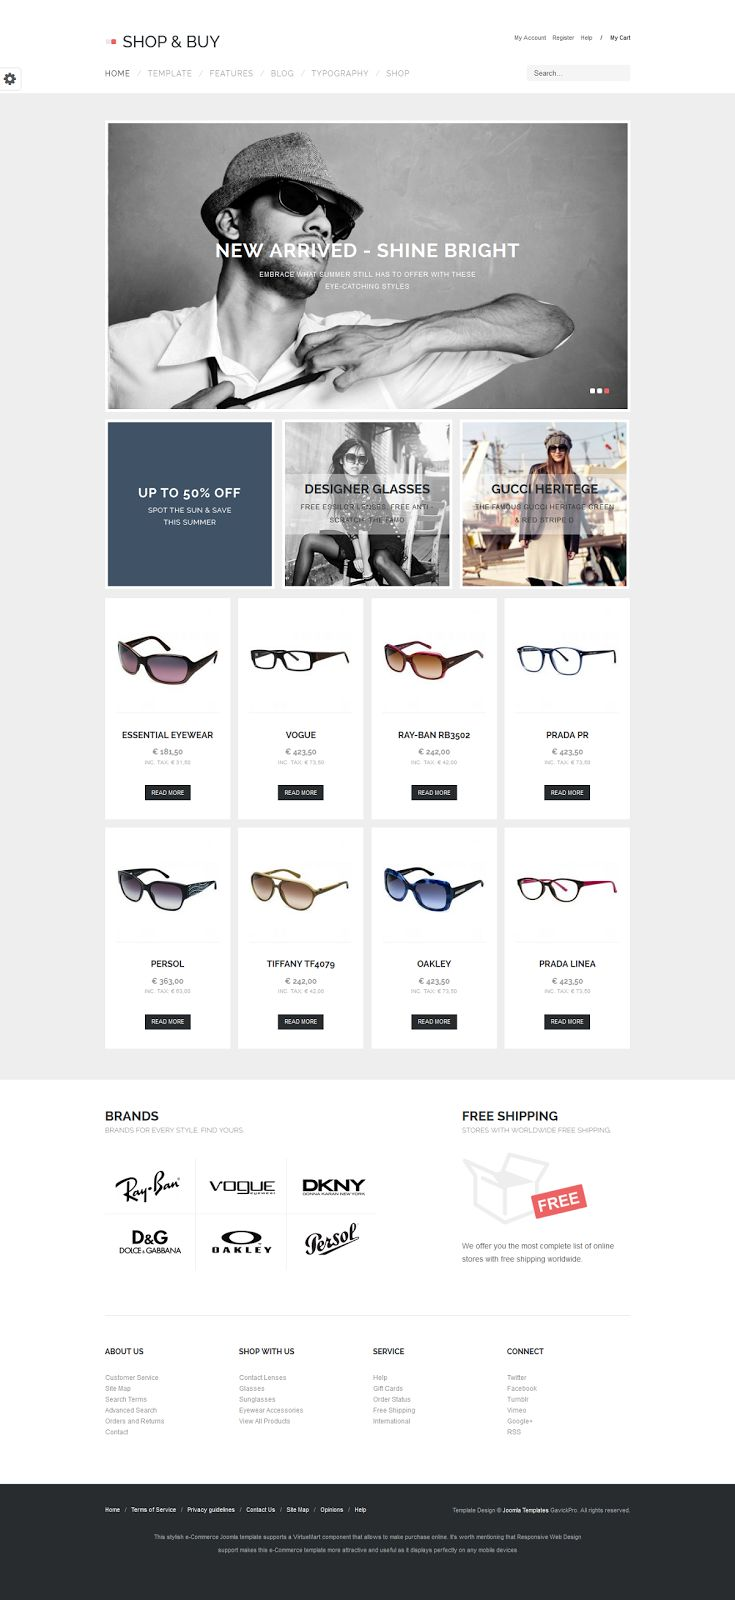 Shop & Buy is a slick sophisticated and modern e-commerce Joomla template which lets you build a successful online store. Looking for fast and lightweight e-commerce template? Seek no more - you've just found the one that is well designed and provides optimal loading time.